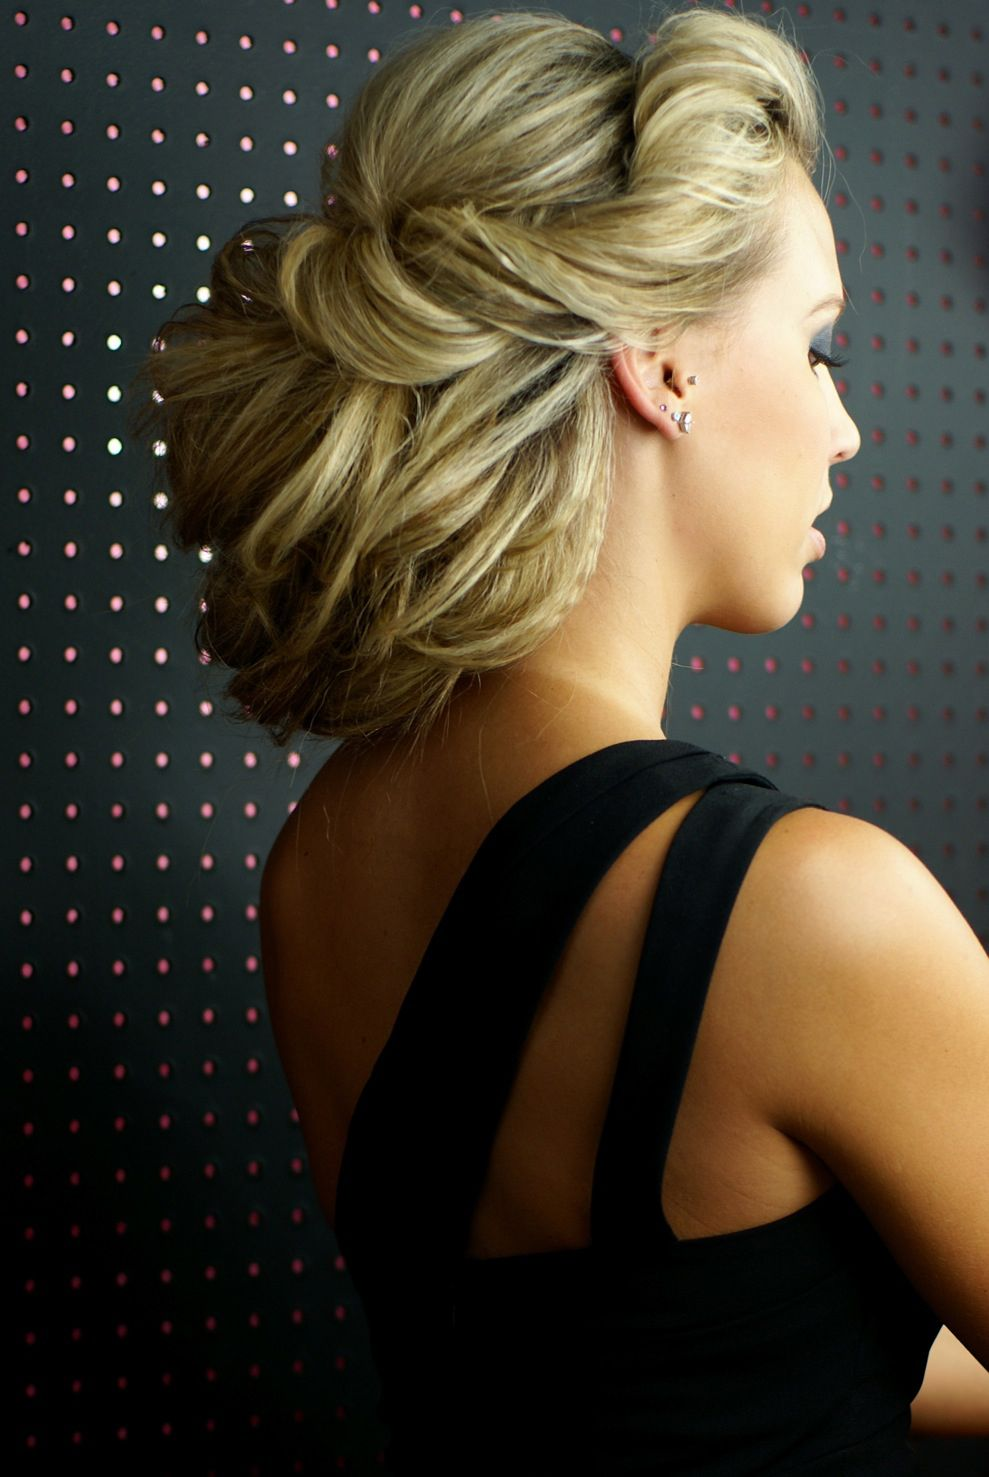 Bridal hairstyling workshop updo crimping and hair style